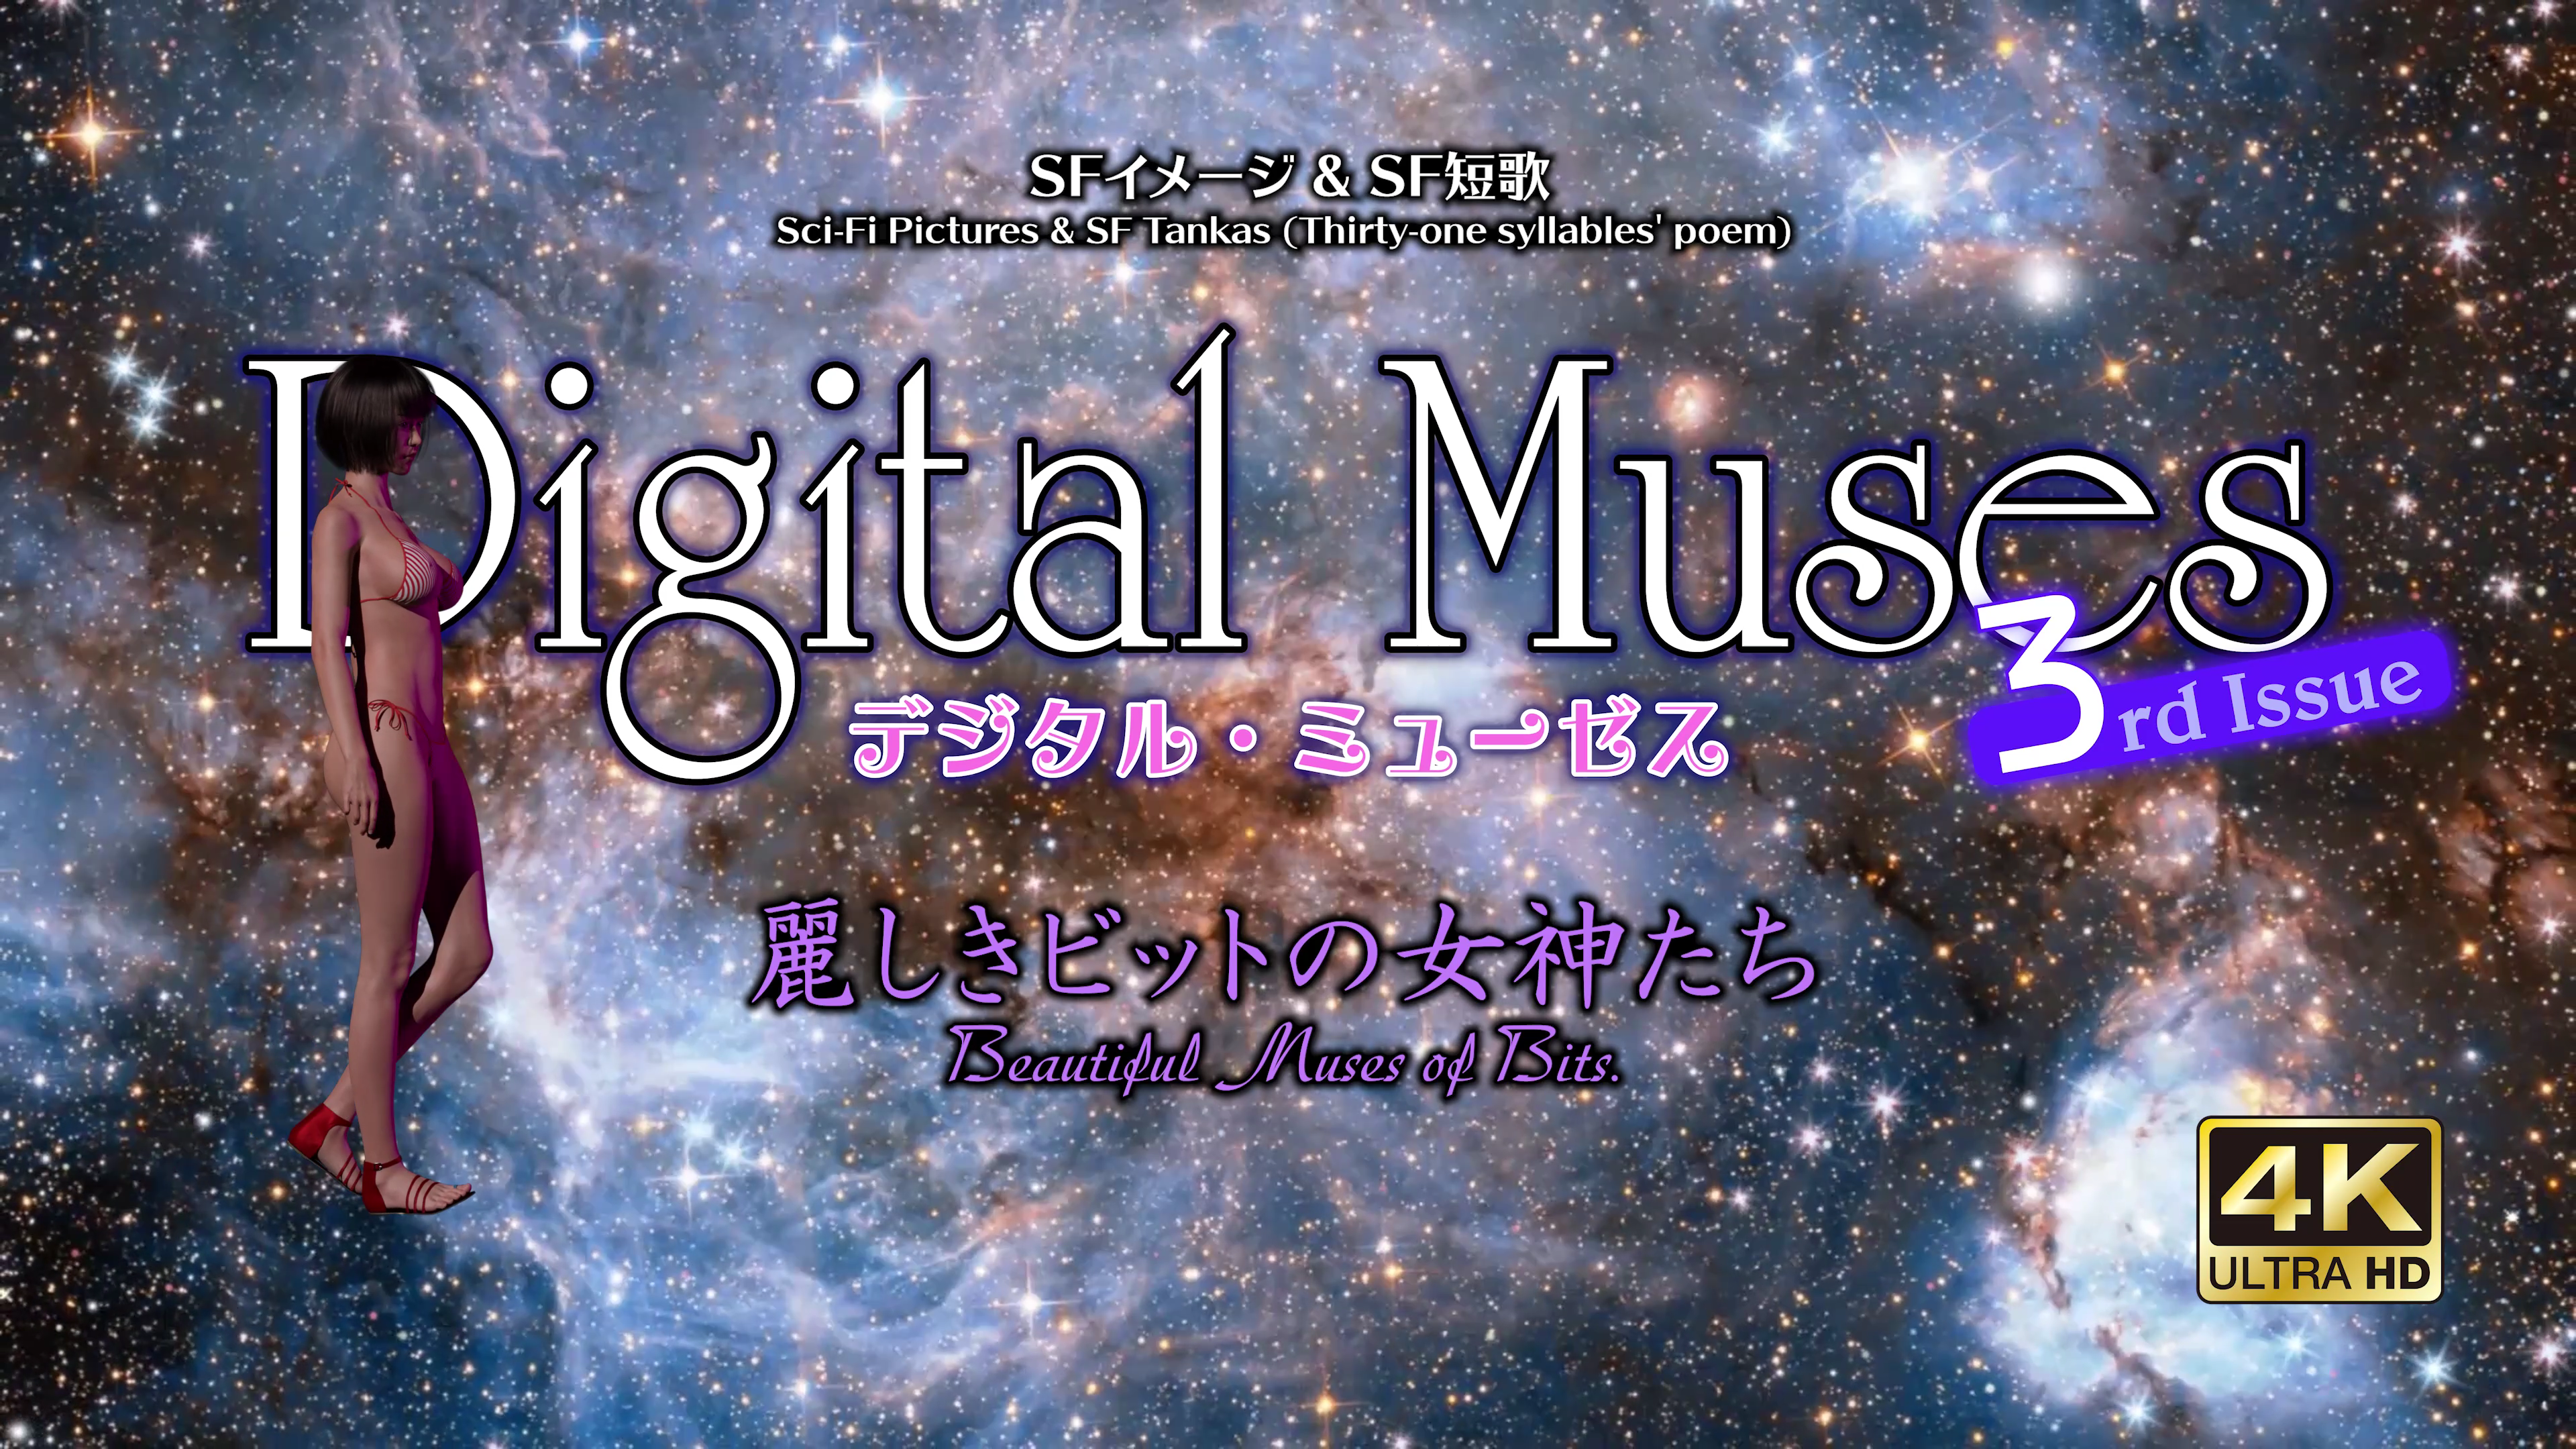 Digital Muses 3rd Issueを公開